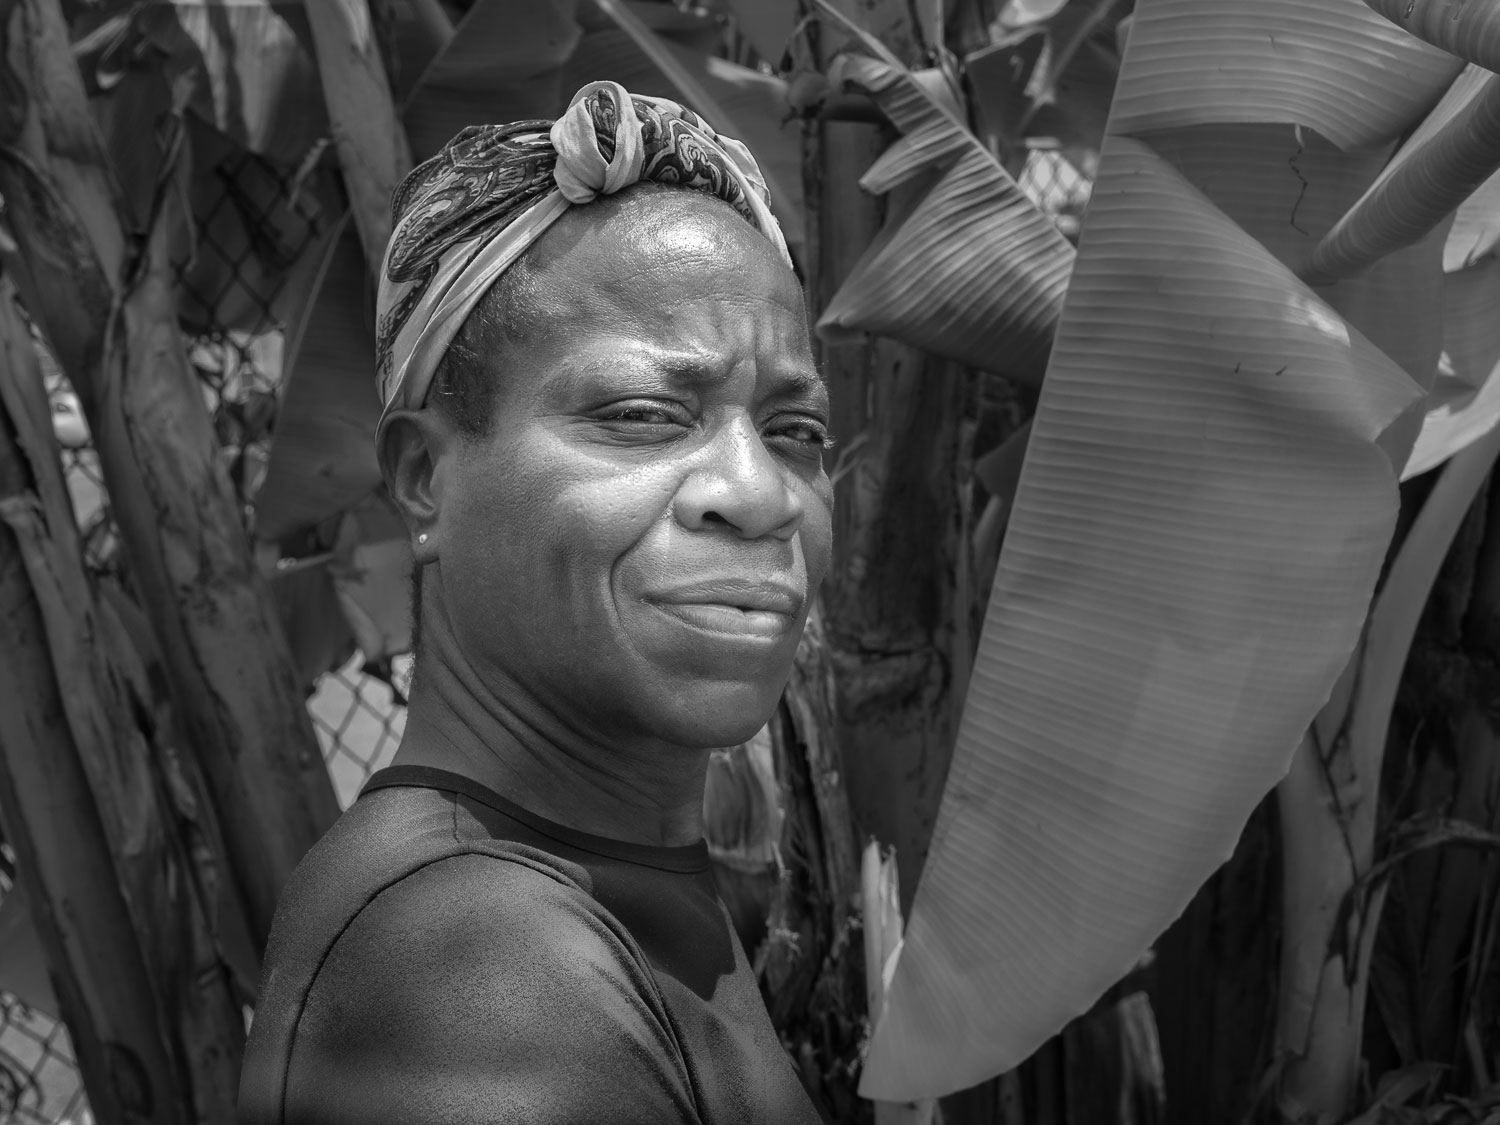 Tasha next to the banana trees that give some shade to the sidewalk on Filbert Street.